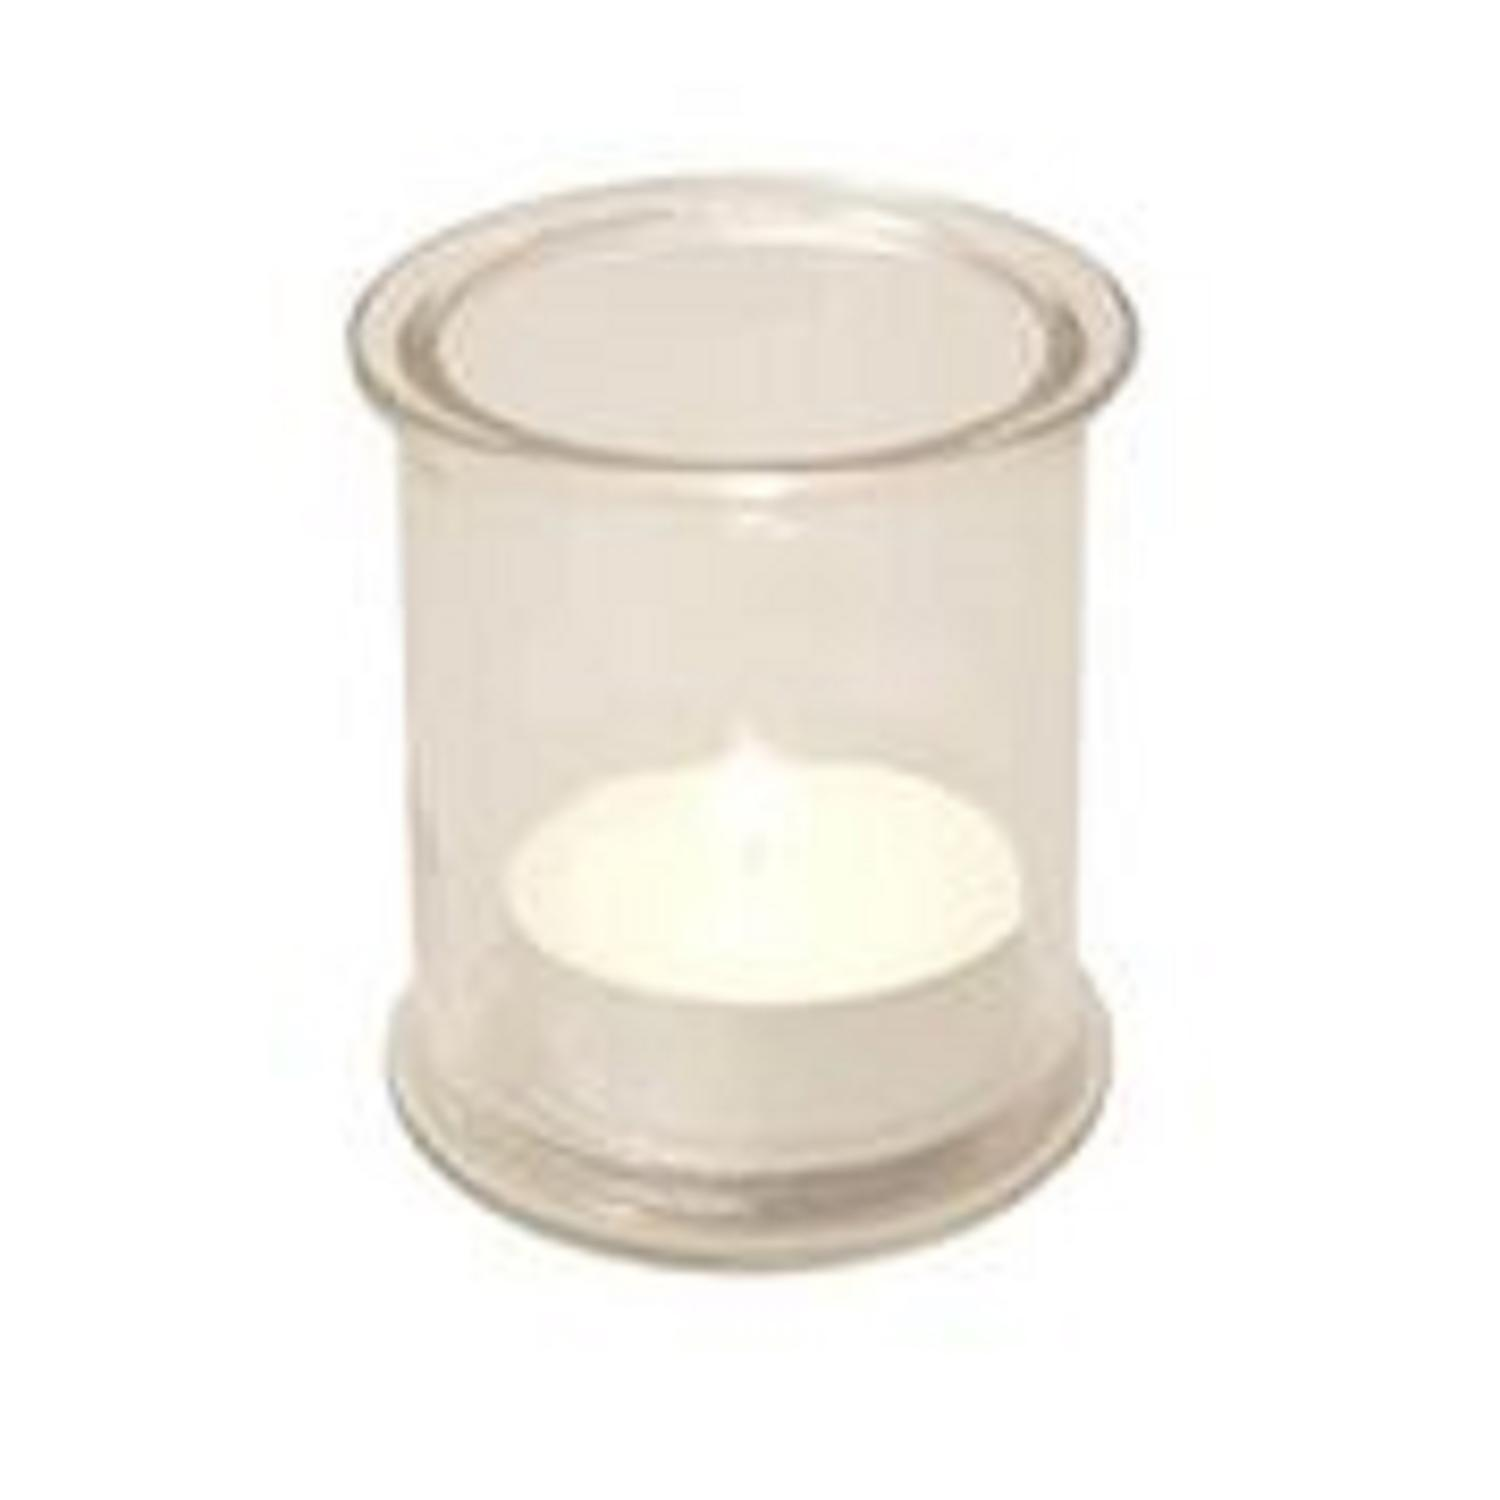 12 White Mega Outdoor Patio Garden Citronella Tealight Candles With 4  Holders